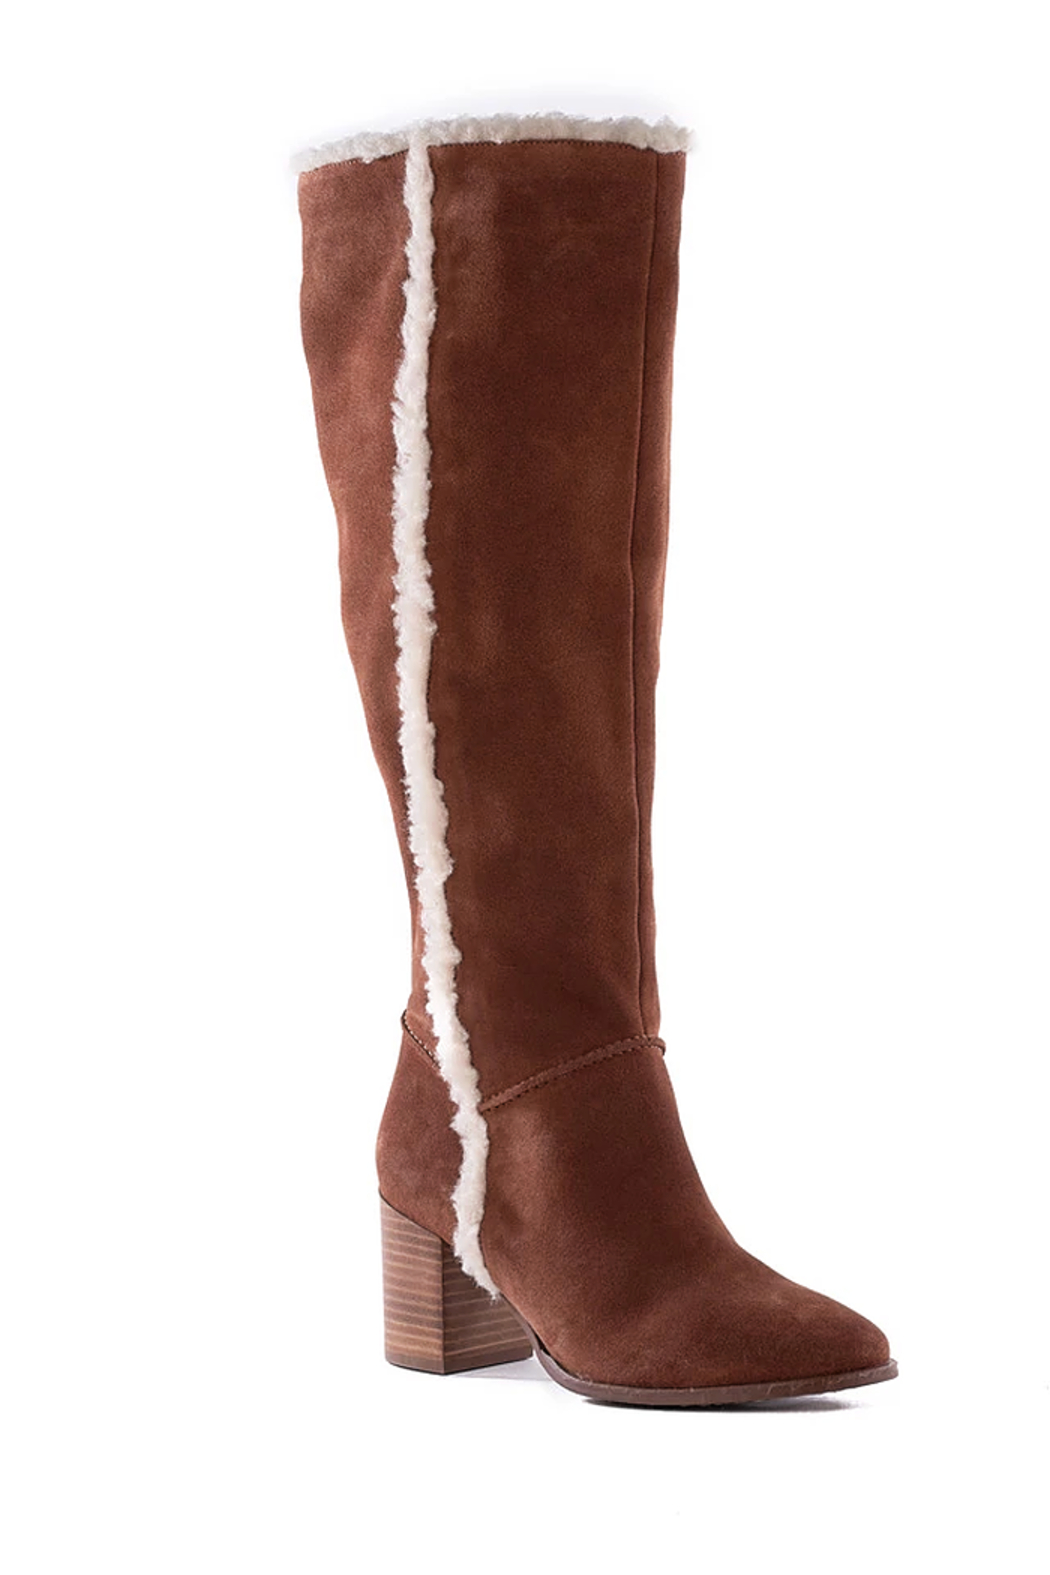 Seychelles Face to Face Shearling Tall Boot - Front Full Image